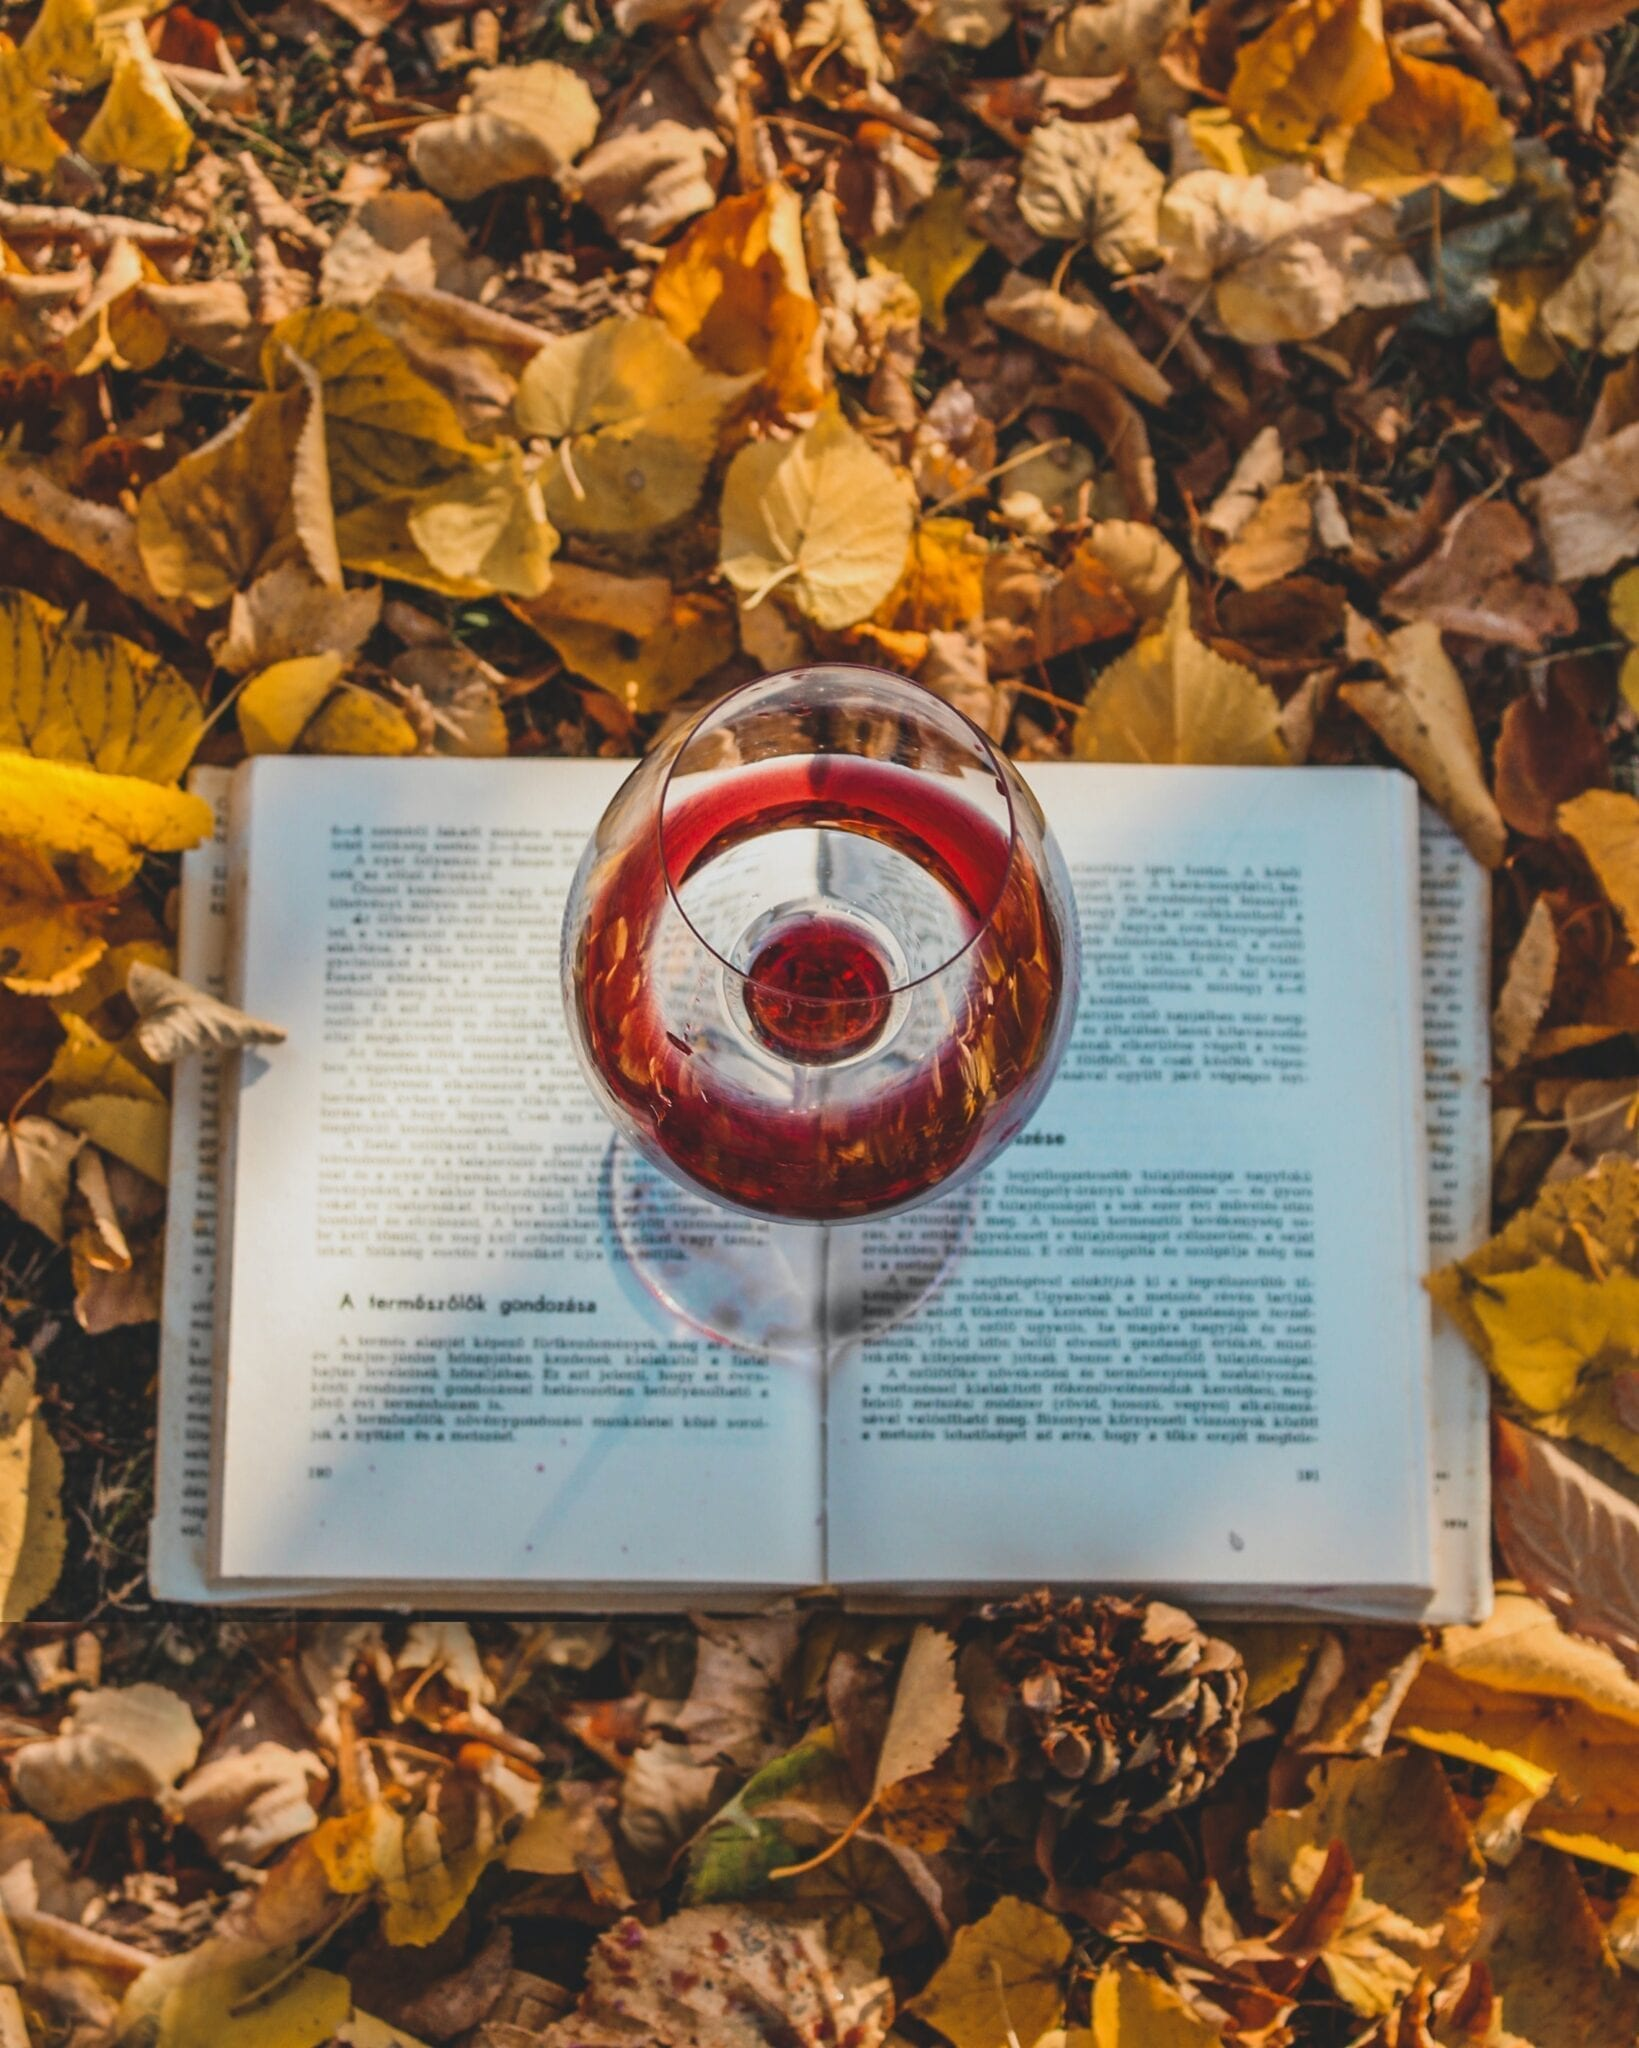 Wine glass, book, autumn leaves